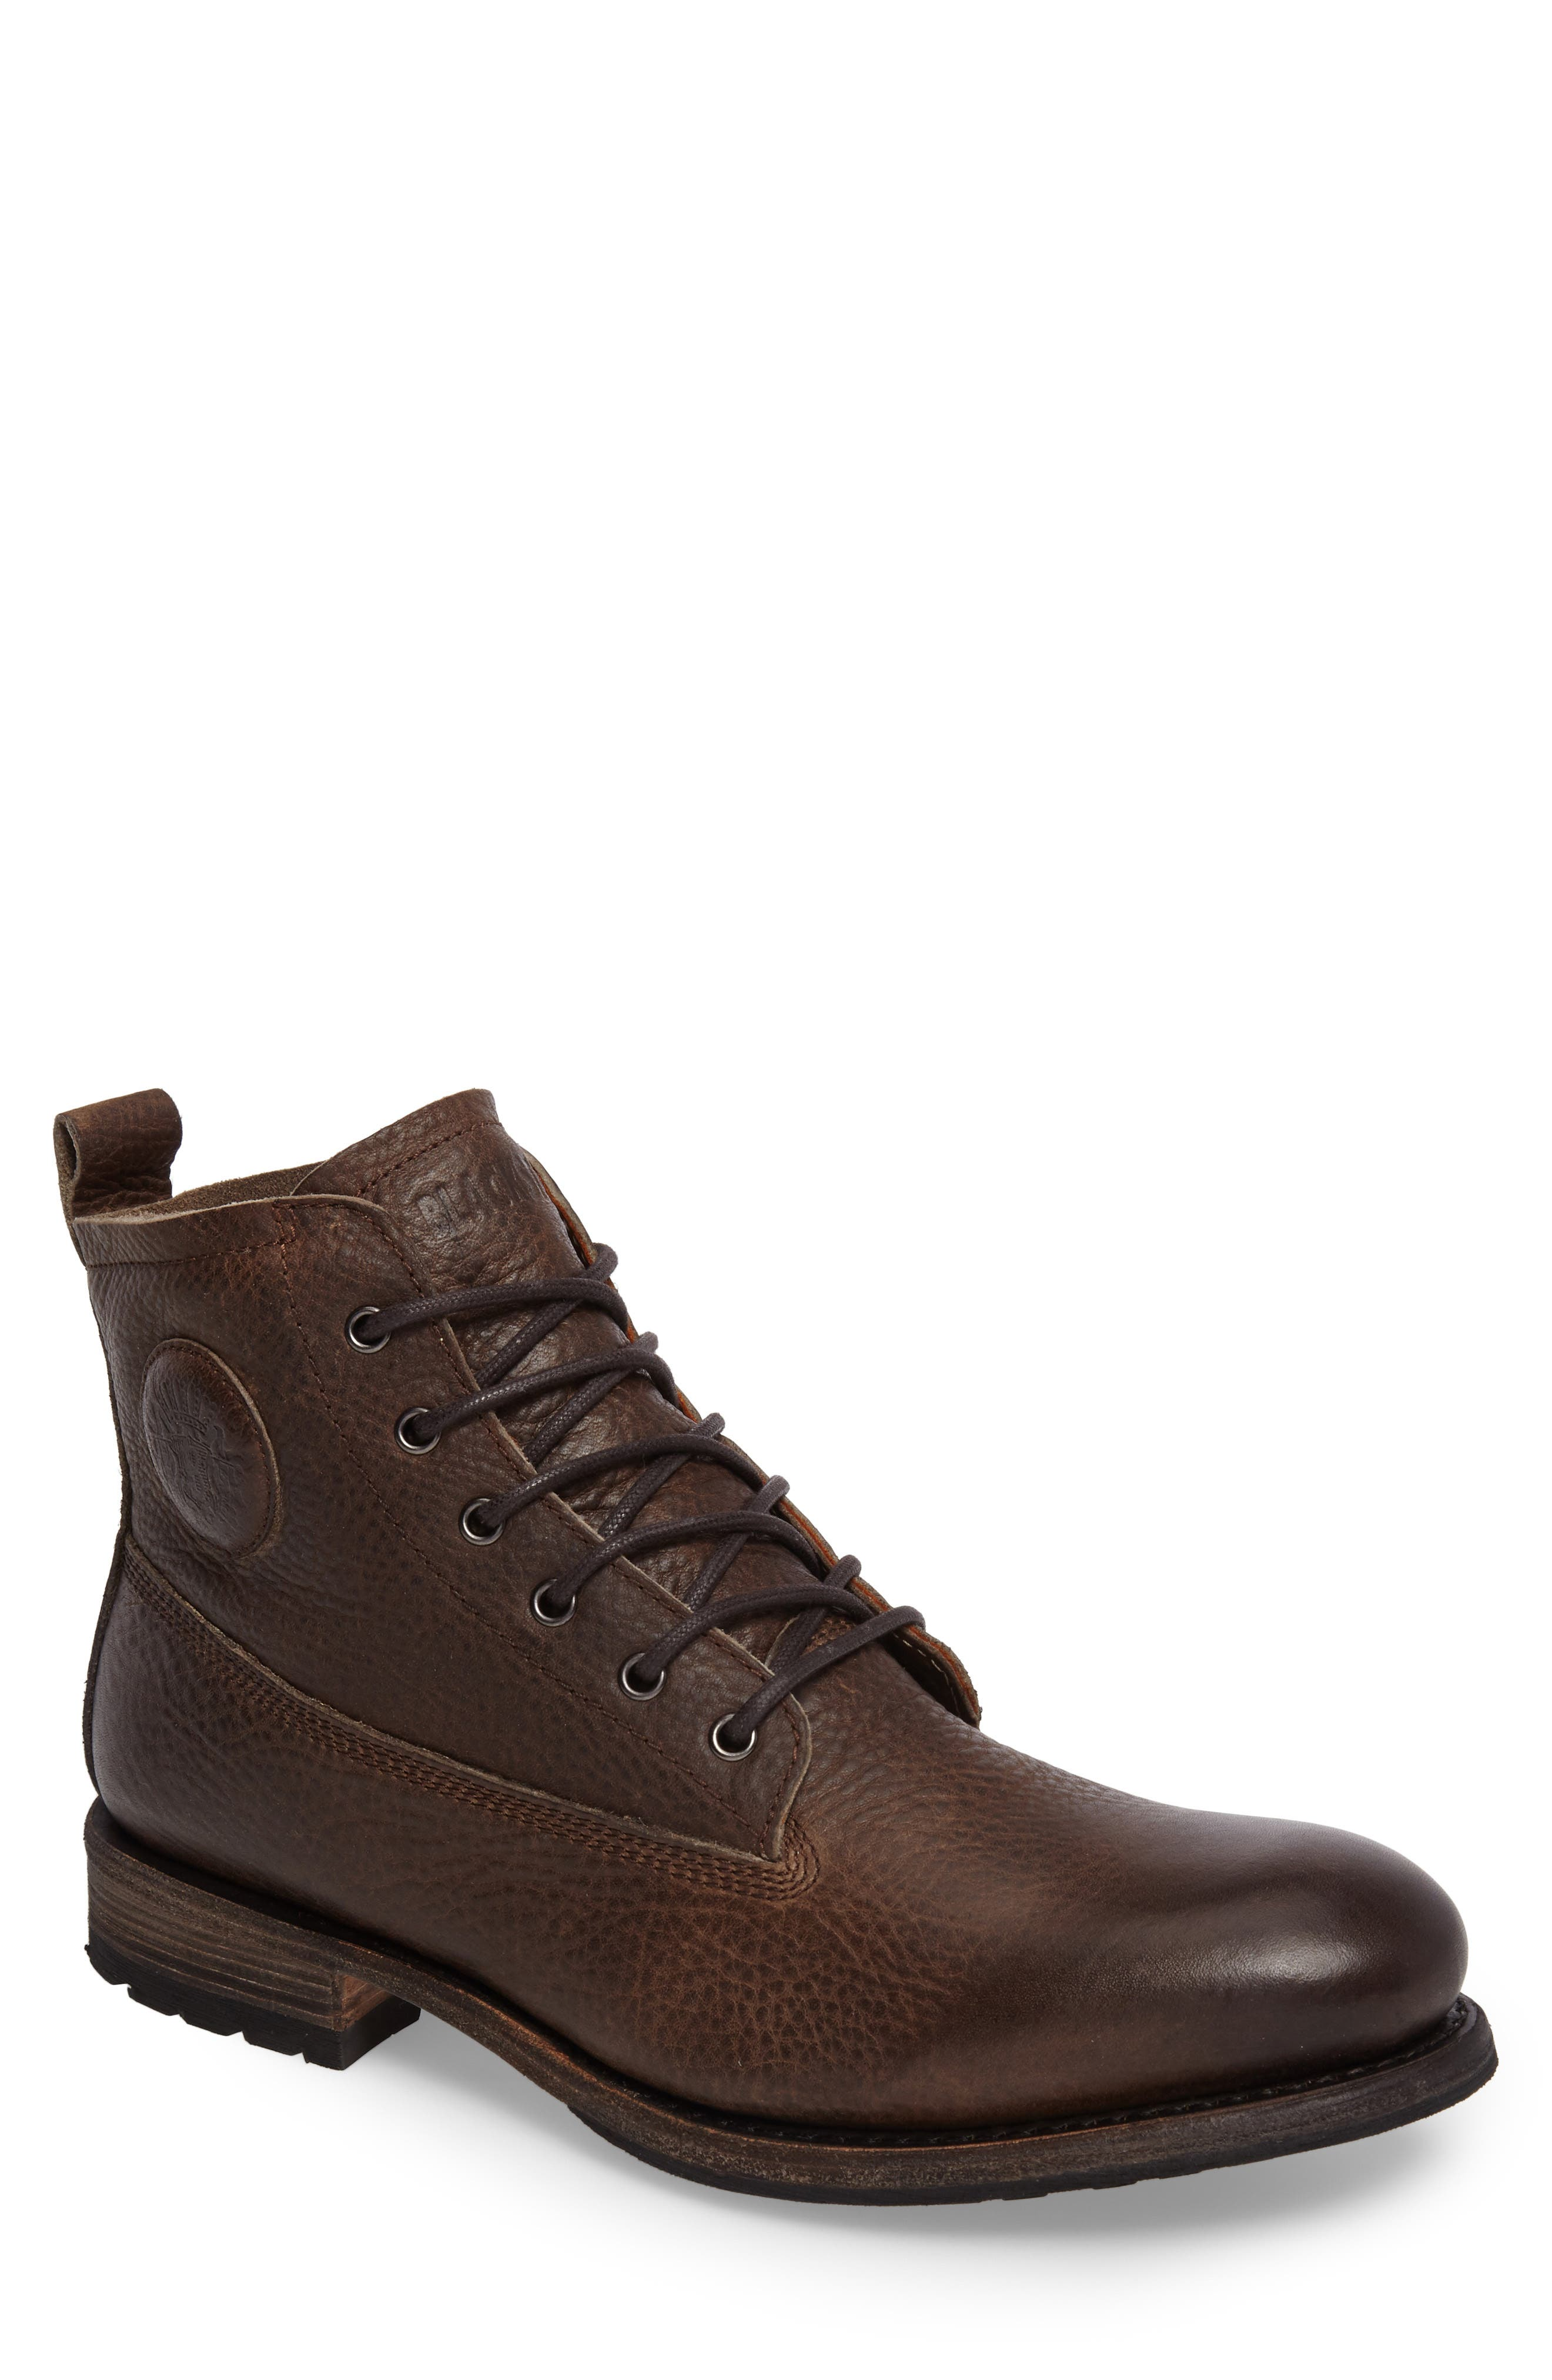 'GM 09' Plain Toe Boot,                             Main thumbnail 1, color,                             061